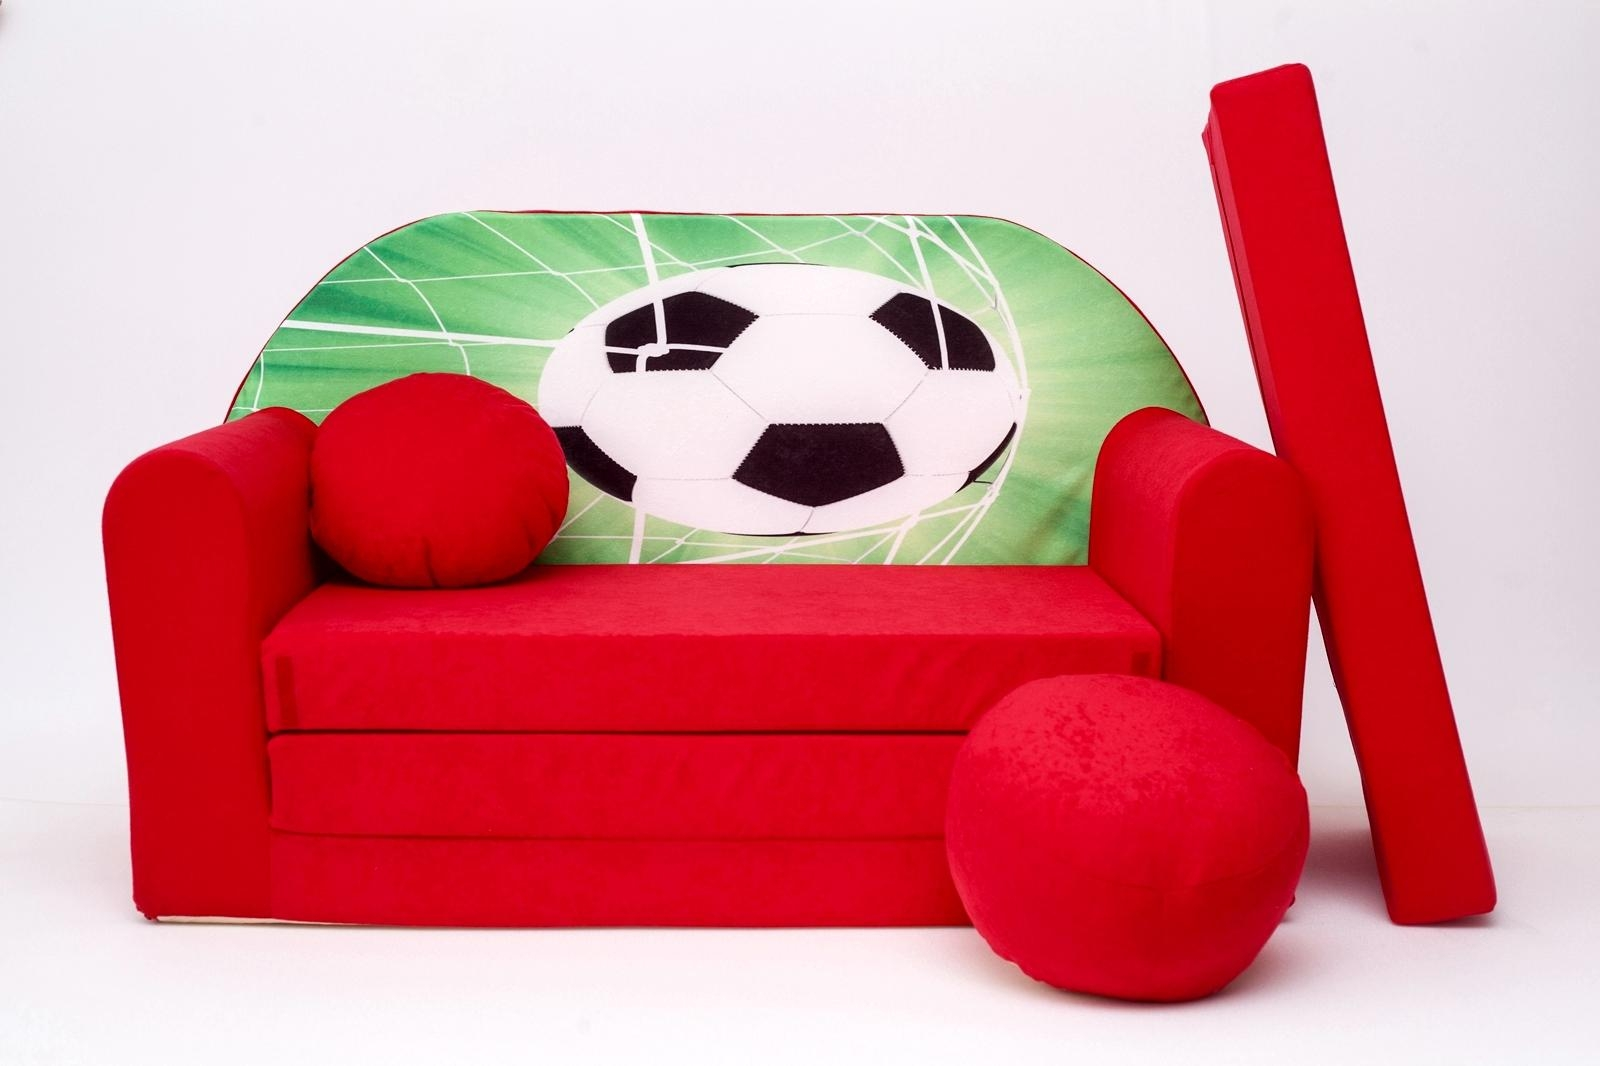 Kids Sofa Bed Childs Furniture + Free Pouffe / Footstool & Pillow Inside Footstool Pouffe Sofa Folding Bed (Image 10 of 20)